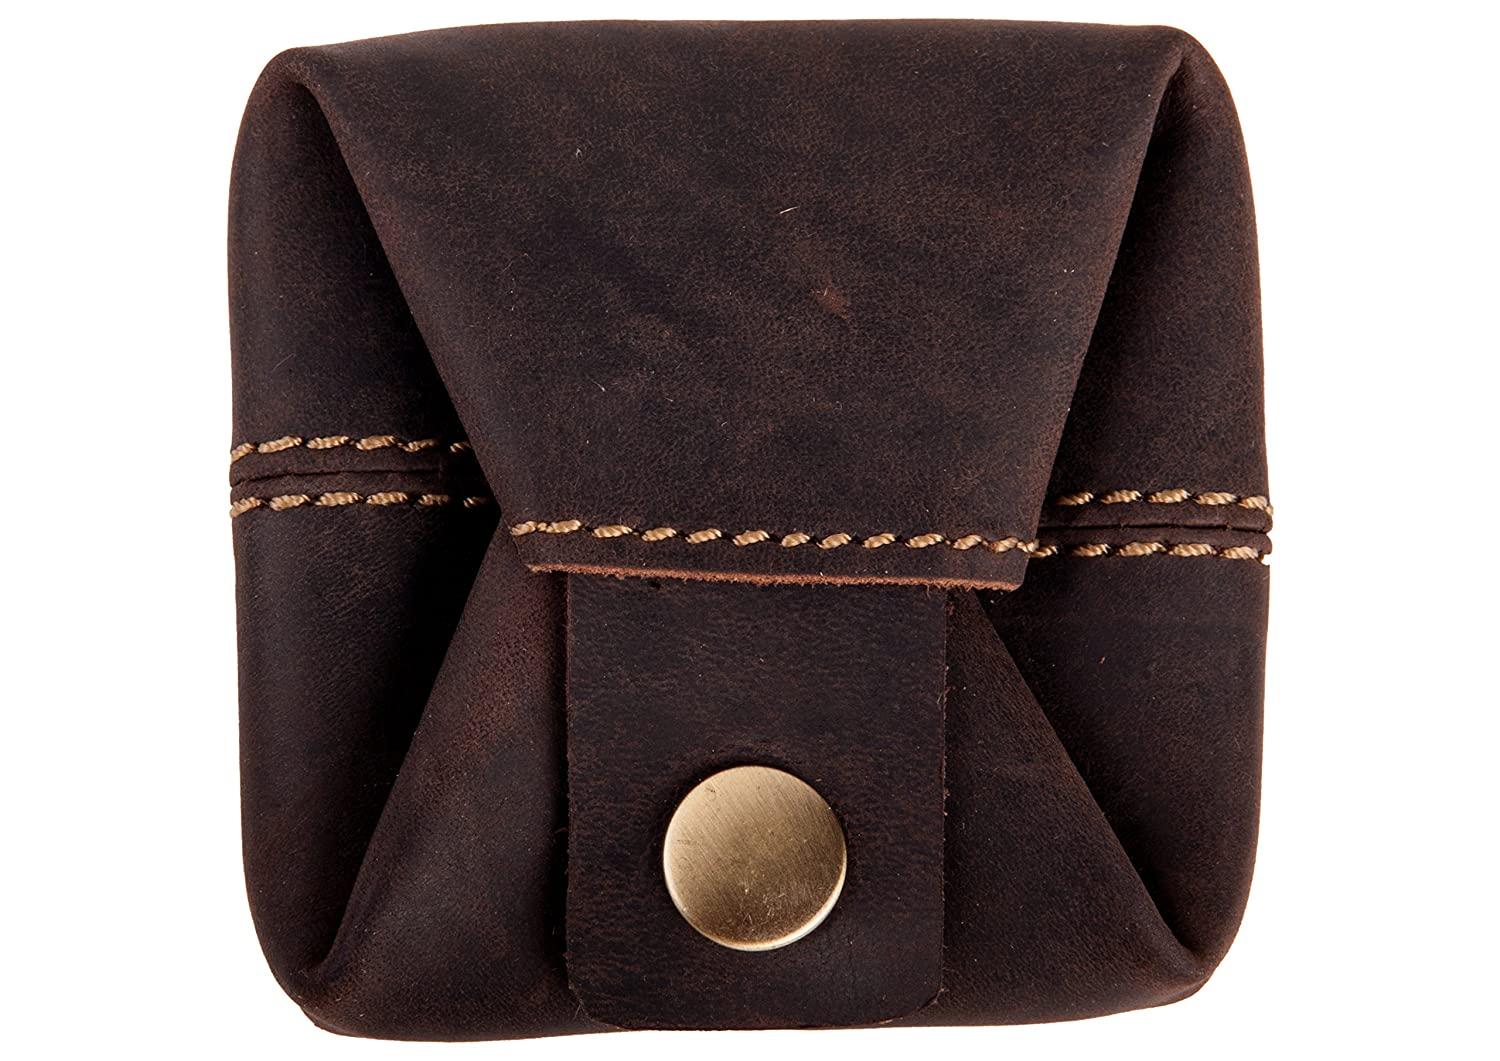 ANDERS Leather Small Coin Purse, Party Wallet I Lederdesign Germany 003